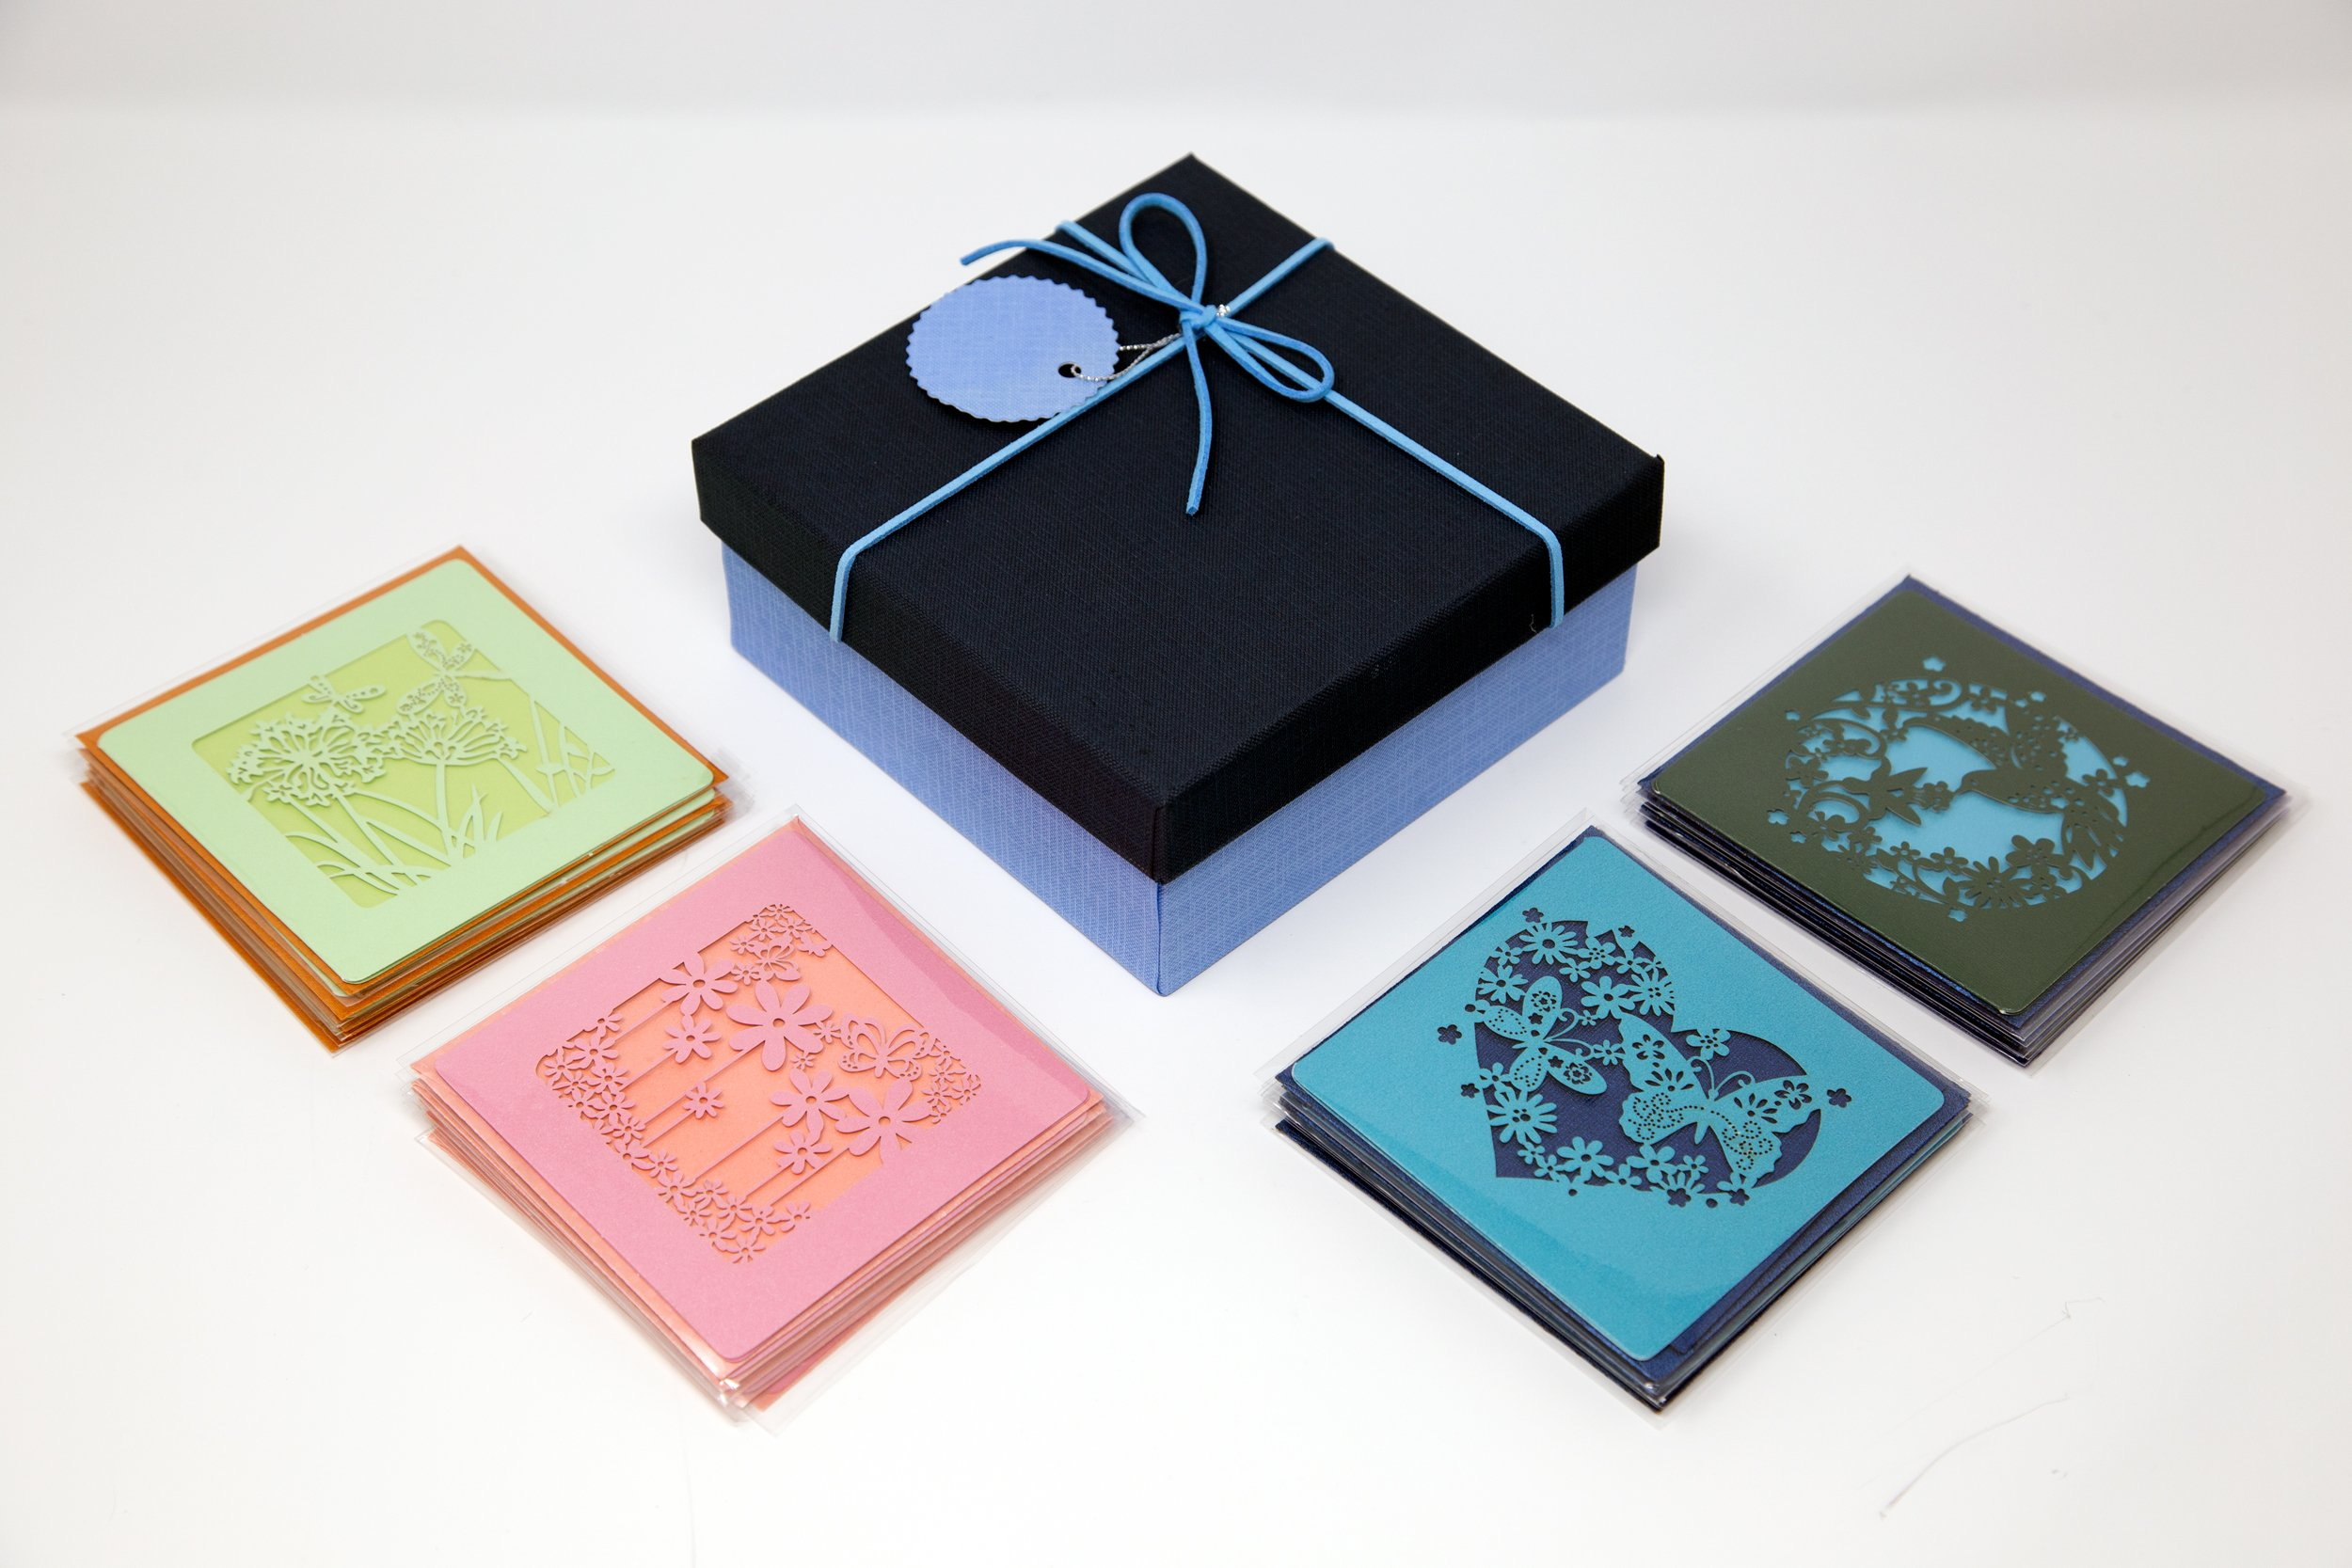 Greeting Cards Assortment - 24 Pack Blank Cards With Envelopes - Assorted Cards For All Occassions Box Set - Blank Note Cards With Envelopes In A Decorative Gift Box - Greeting Cards Blank